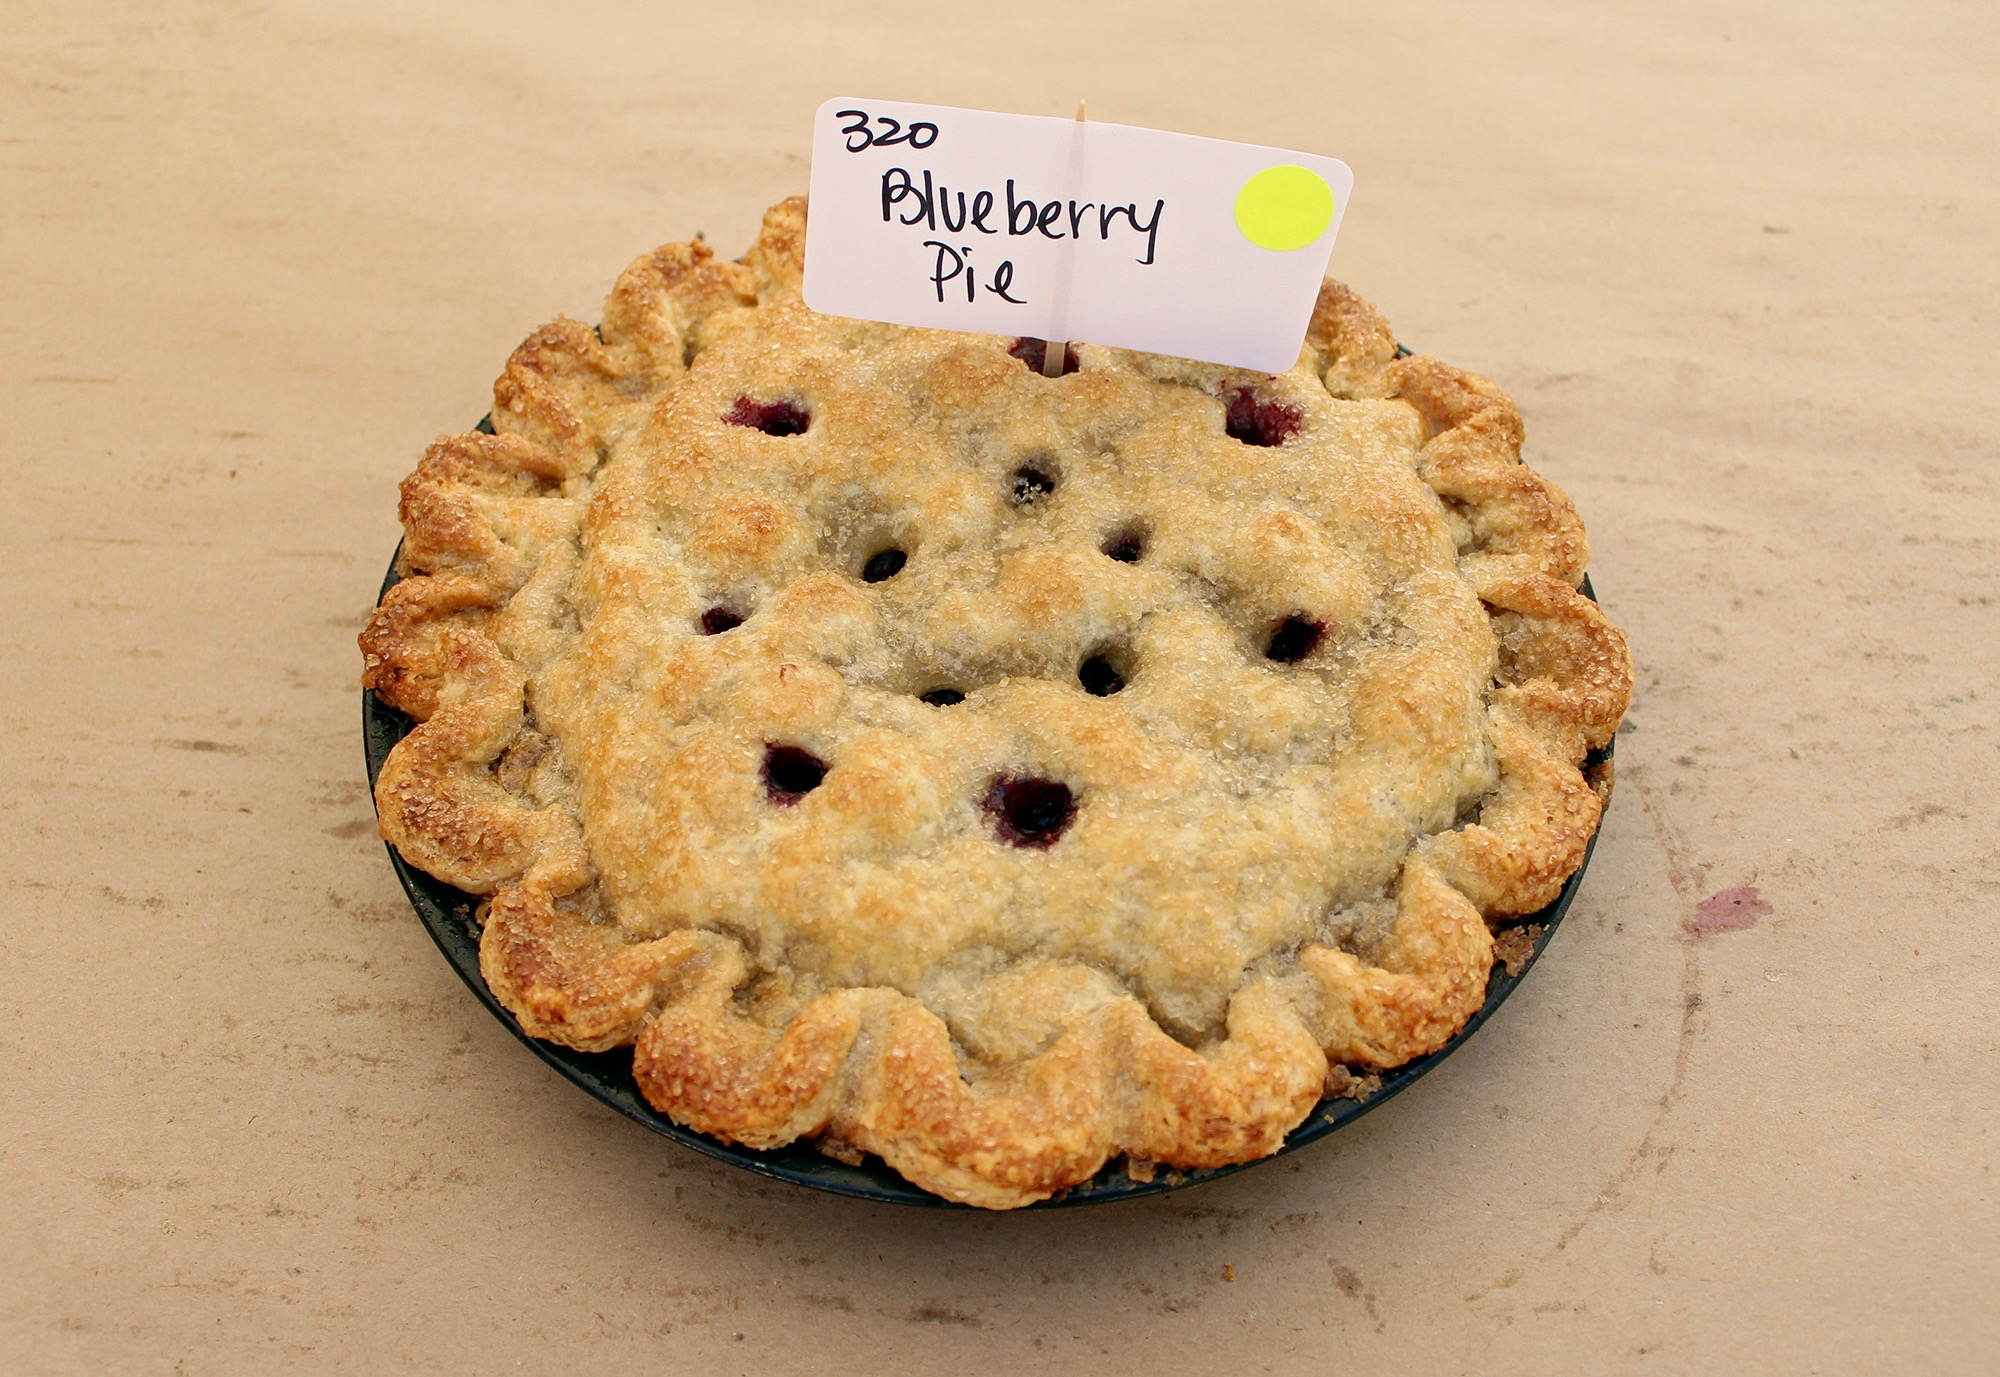 best-crust-320-blueberry-pie-karla-subero